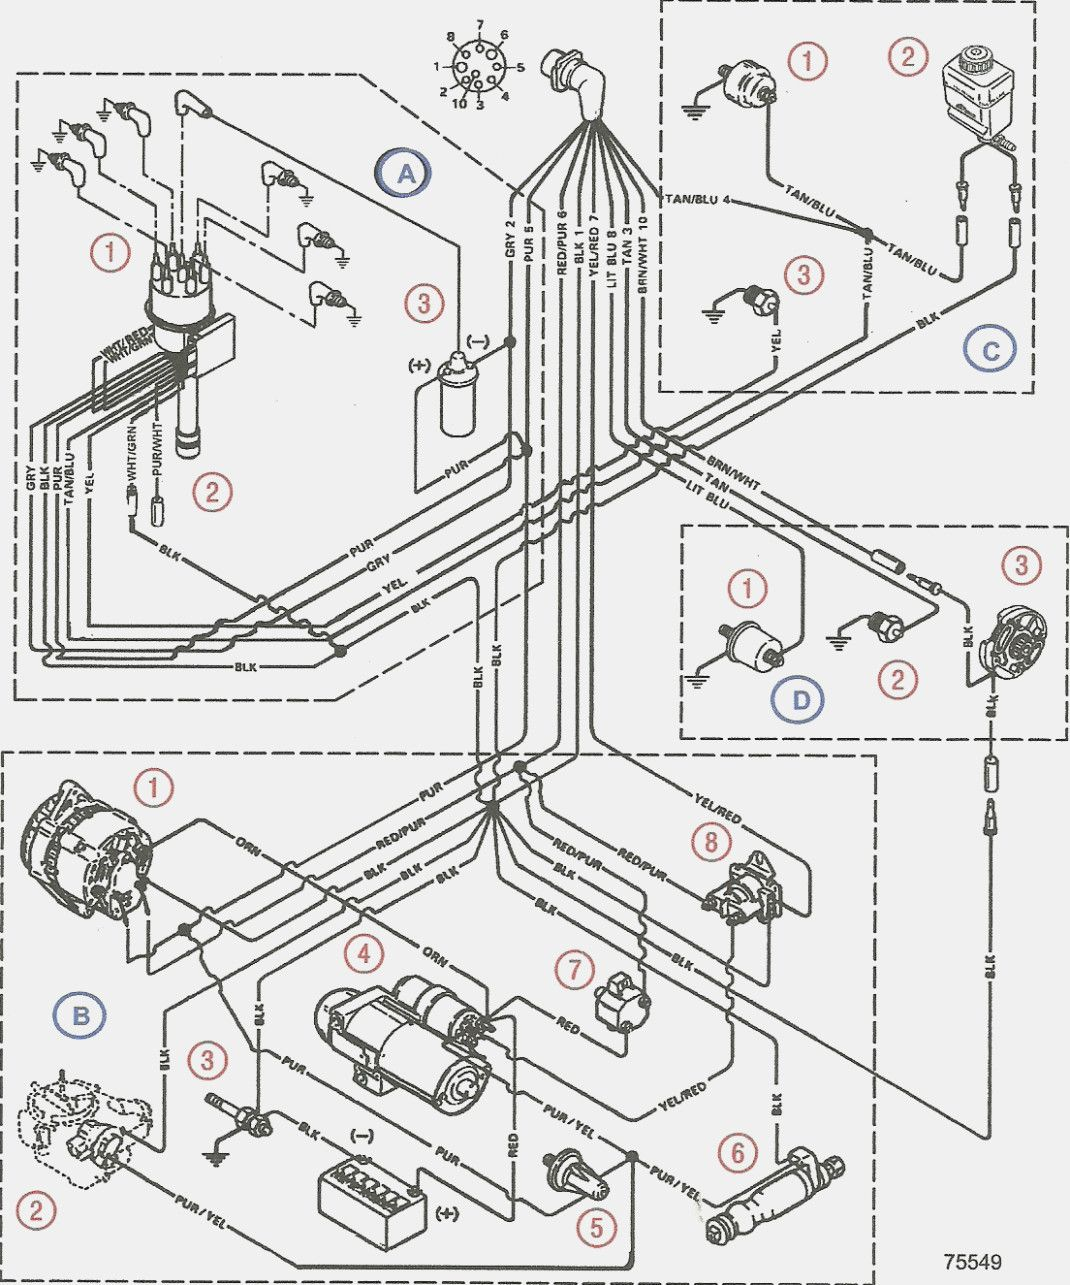 volvo penta outdrive wiring diagram 2 sx parts domainadvice org volvo penta outdrive wiring diagram [ 1070 x 1285 Pixel ]